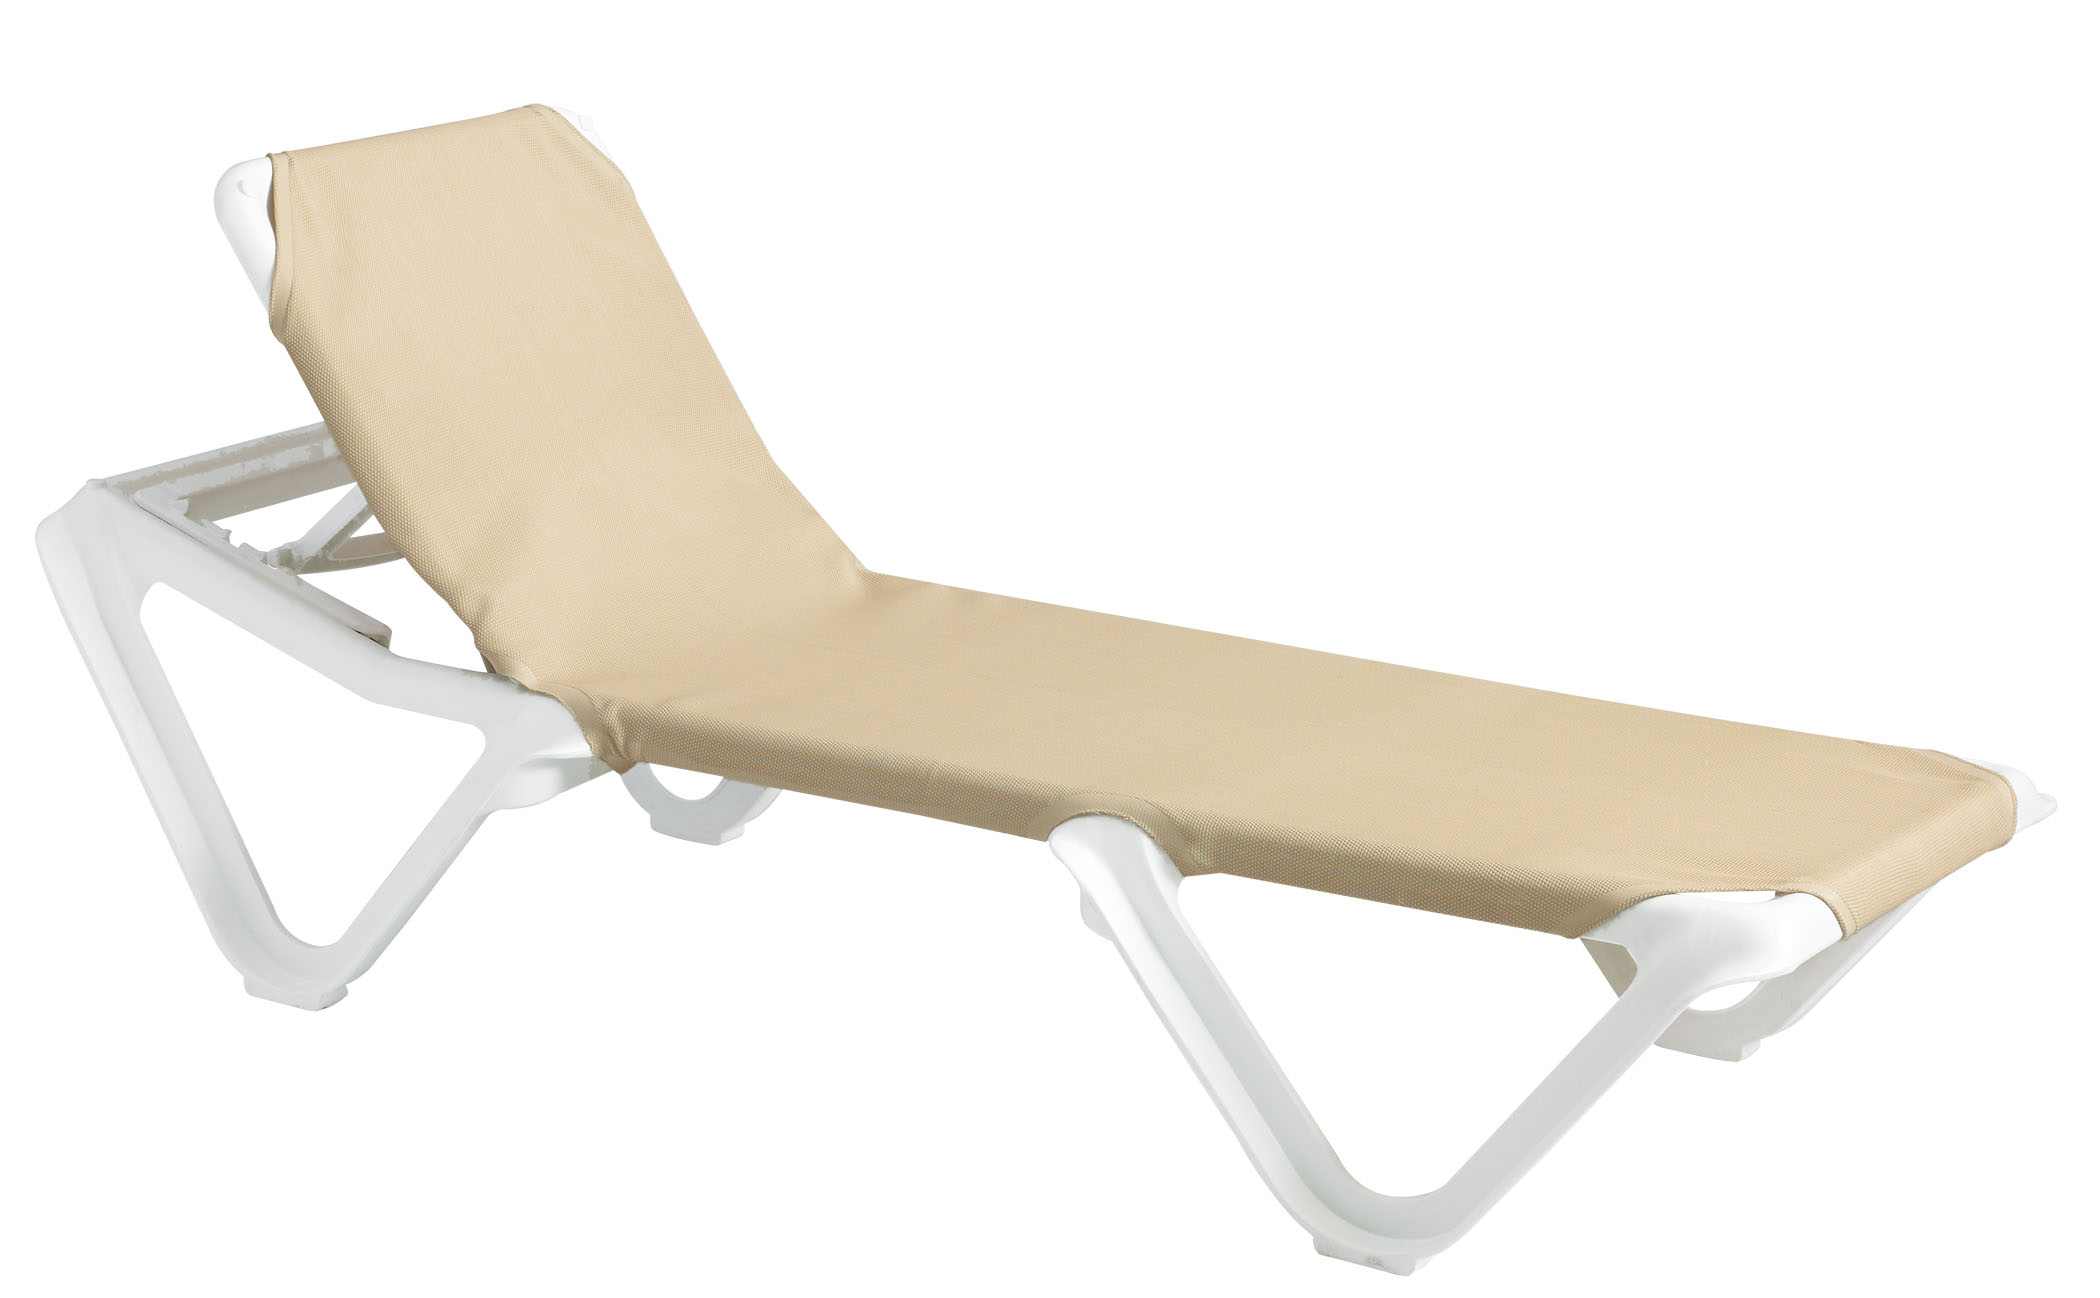 grosfillex madras lounge chairs high chair convertible nautical adjustable resin sling chaise